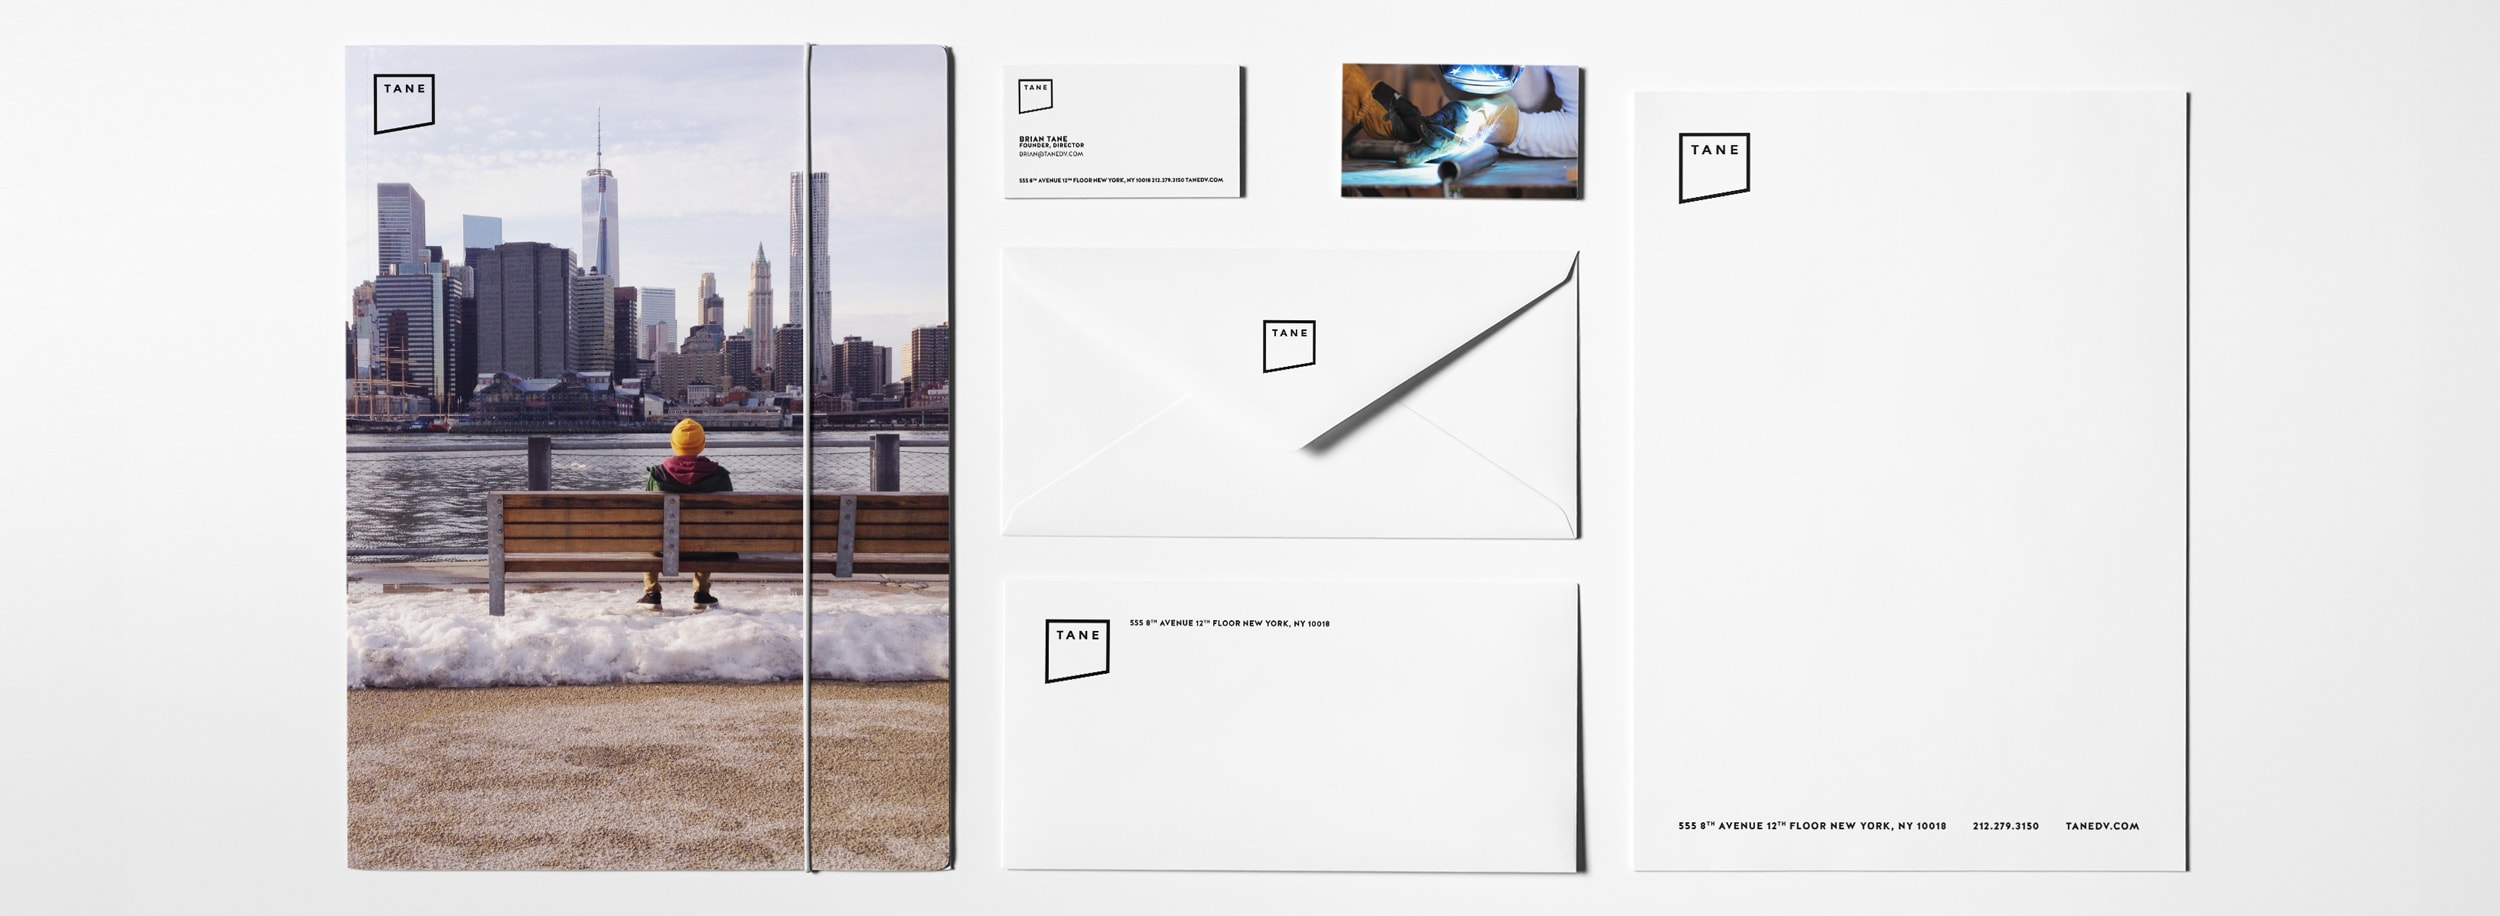 TANE branding and stationery components